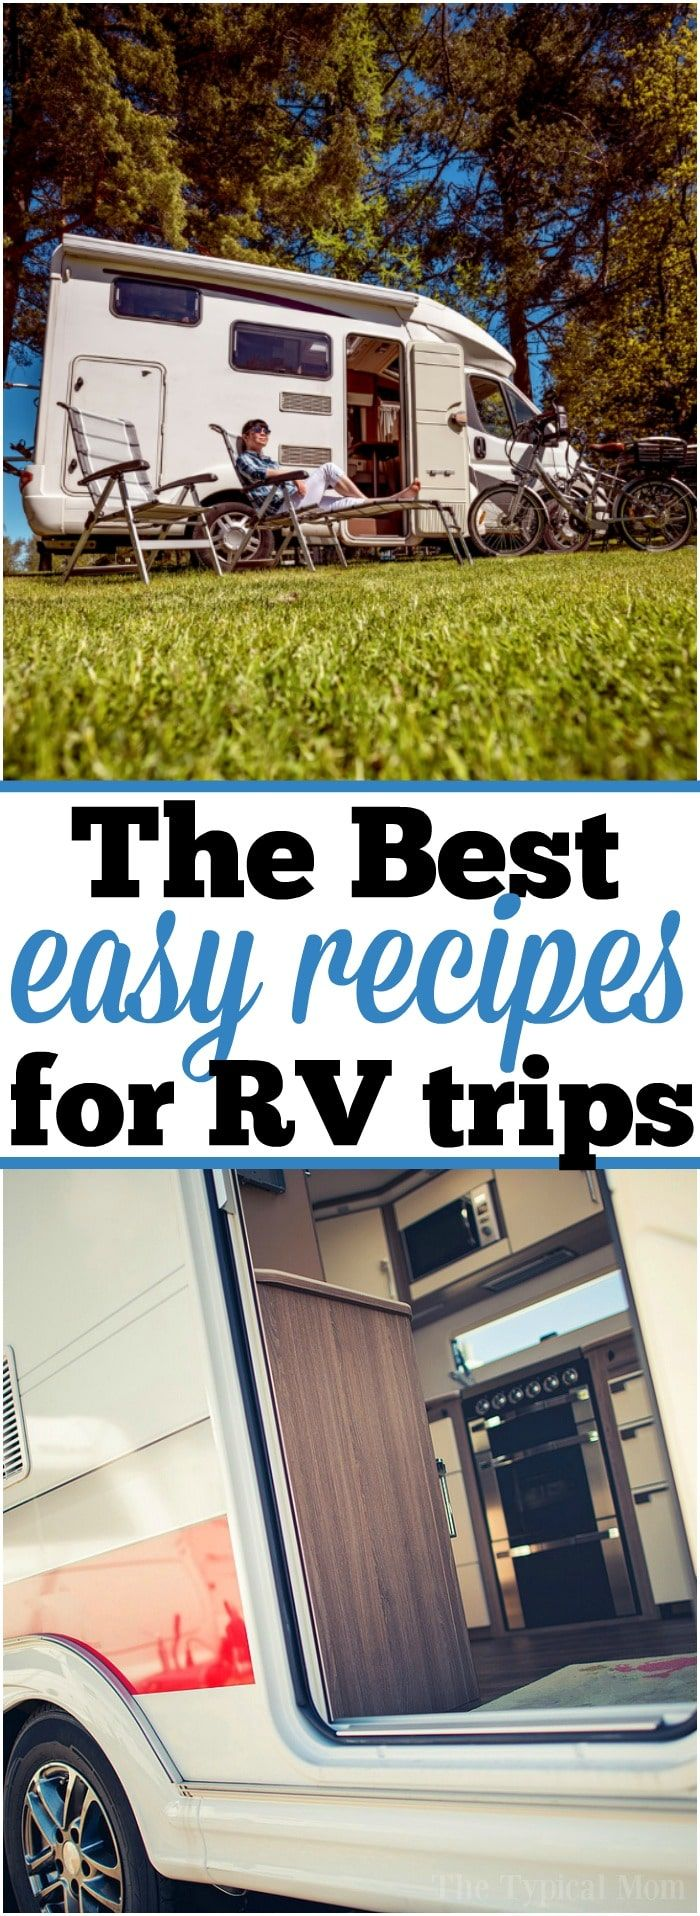 If you travel a lot like we do you need a few easy RV meals to prepare when you're camping or on a road trip! RV meal planning is here to make it easier.  via @thetypicalmom